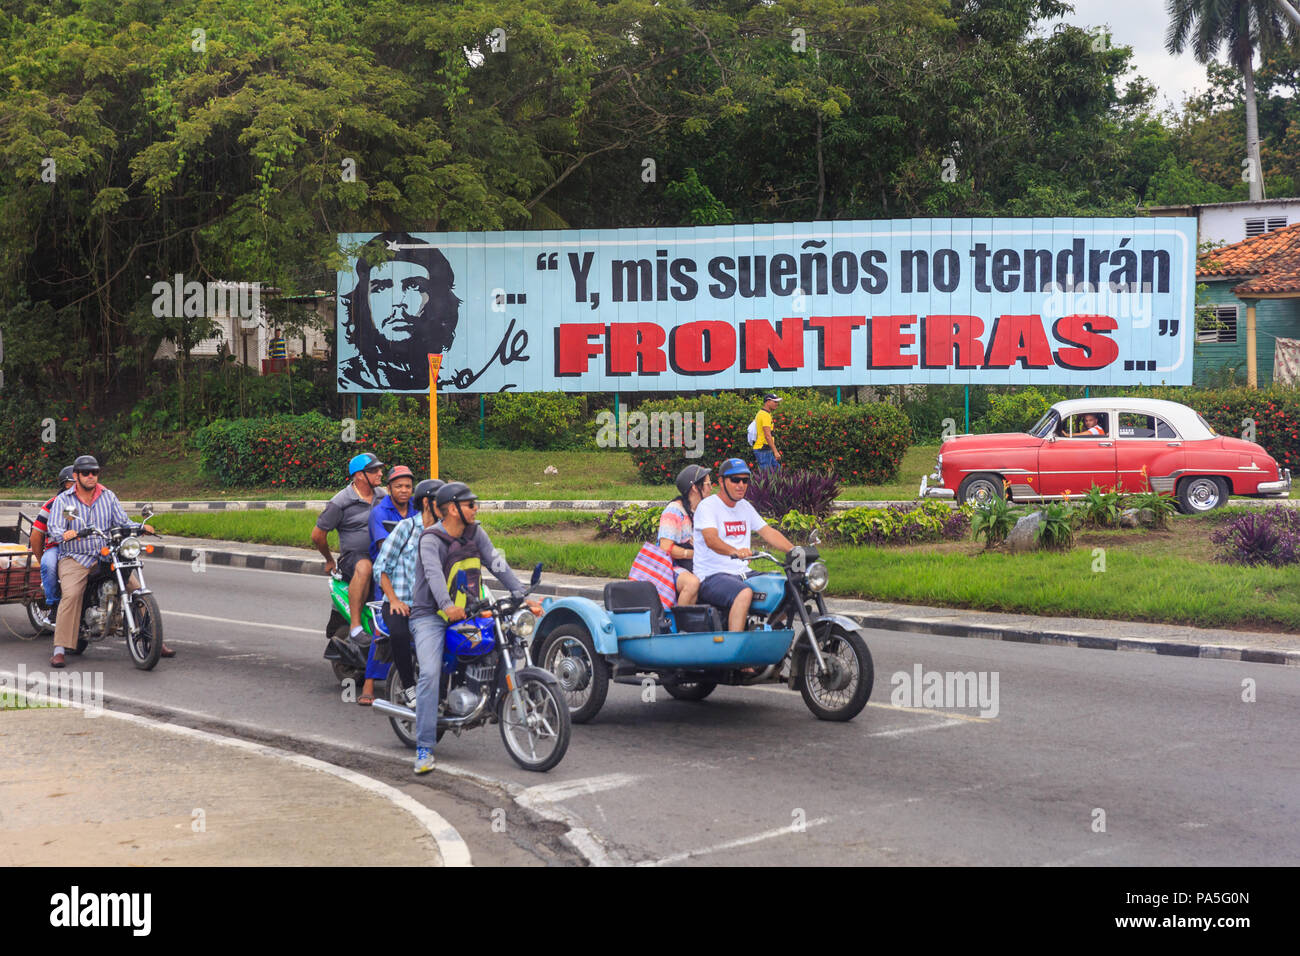 Cuban people in cars and motorcycles in front of propaganda billboard sign depicting Che Guevara, y mis suenos no tendran fronteras, Vinales, Cuba - Stock Image